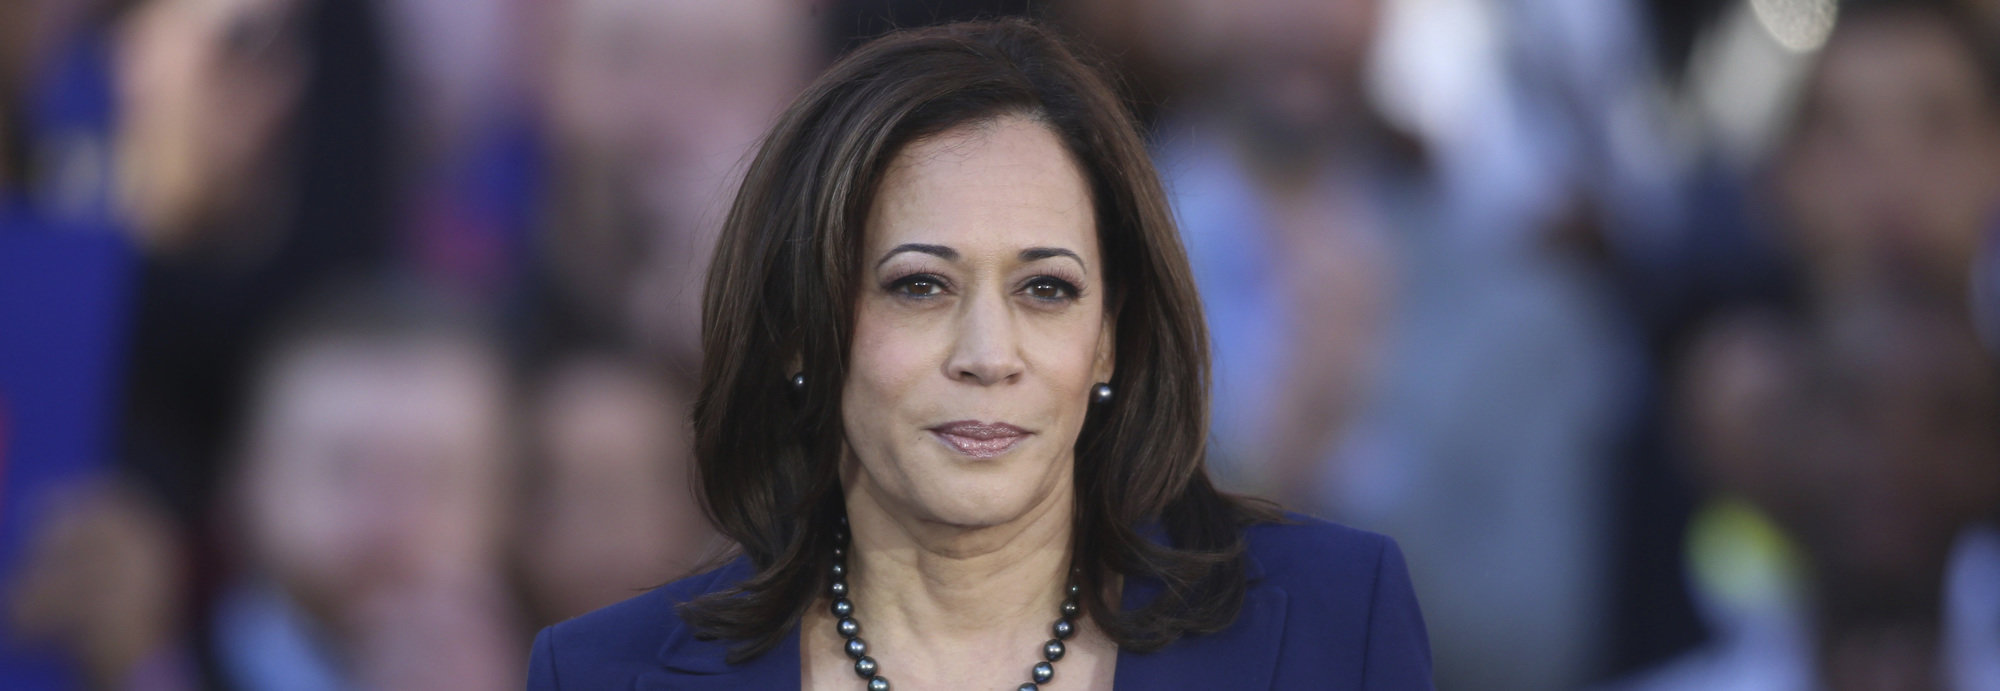 Can Kamala Harris Adapt The Government's Airplane-Safety Model to Stem Police Shootings?